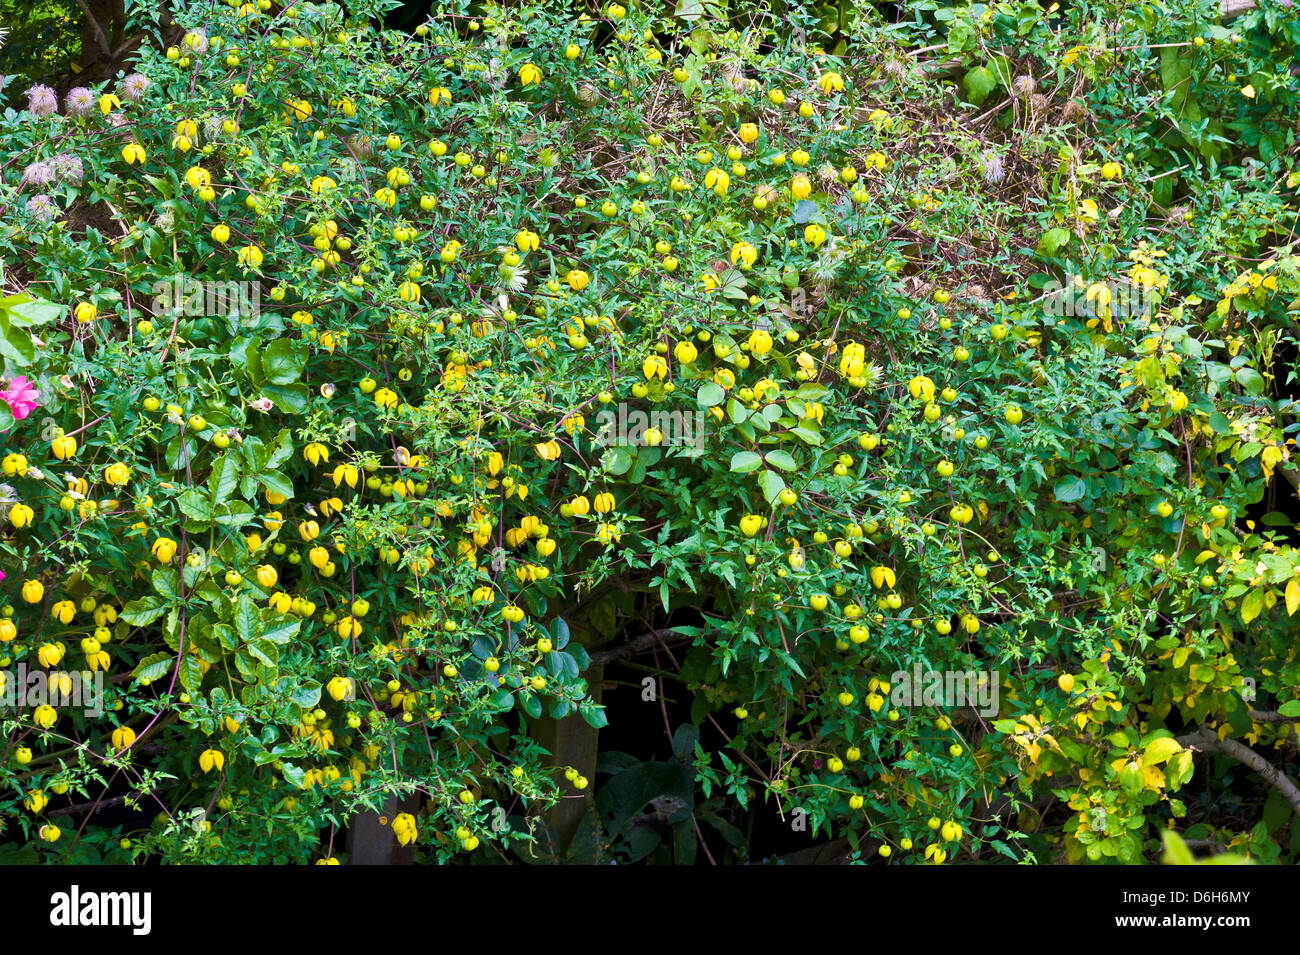 Bell shaped yellow flower stock photos bell shaped yellow flower bill macenze clemetis with yellow bell shaped flowers garden plant summer yellow stock image mightylinksfo